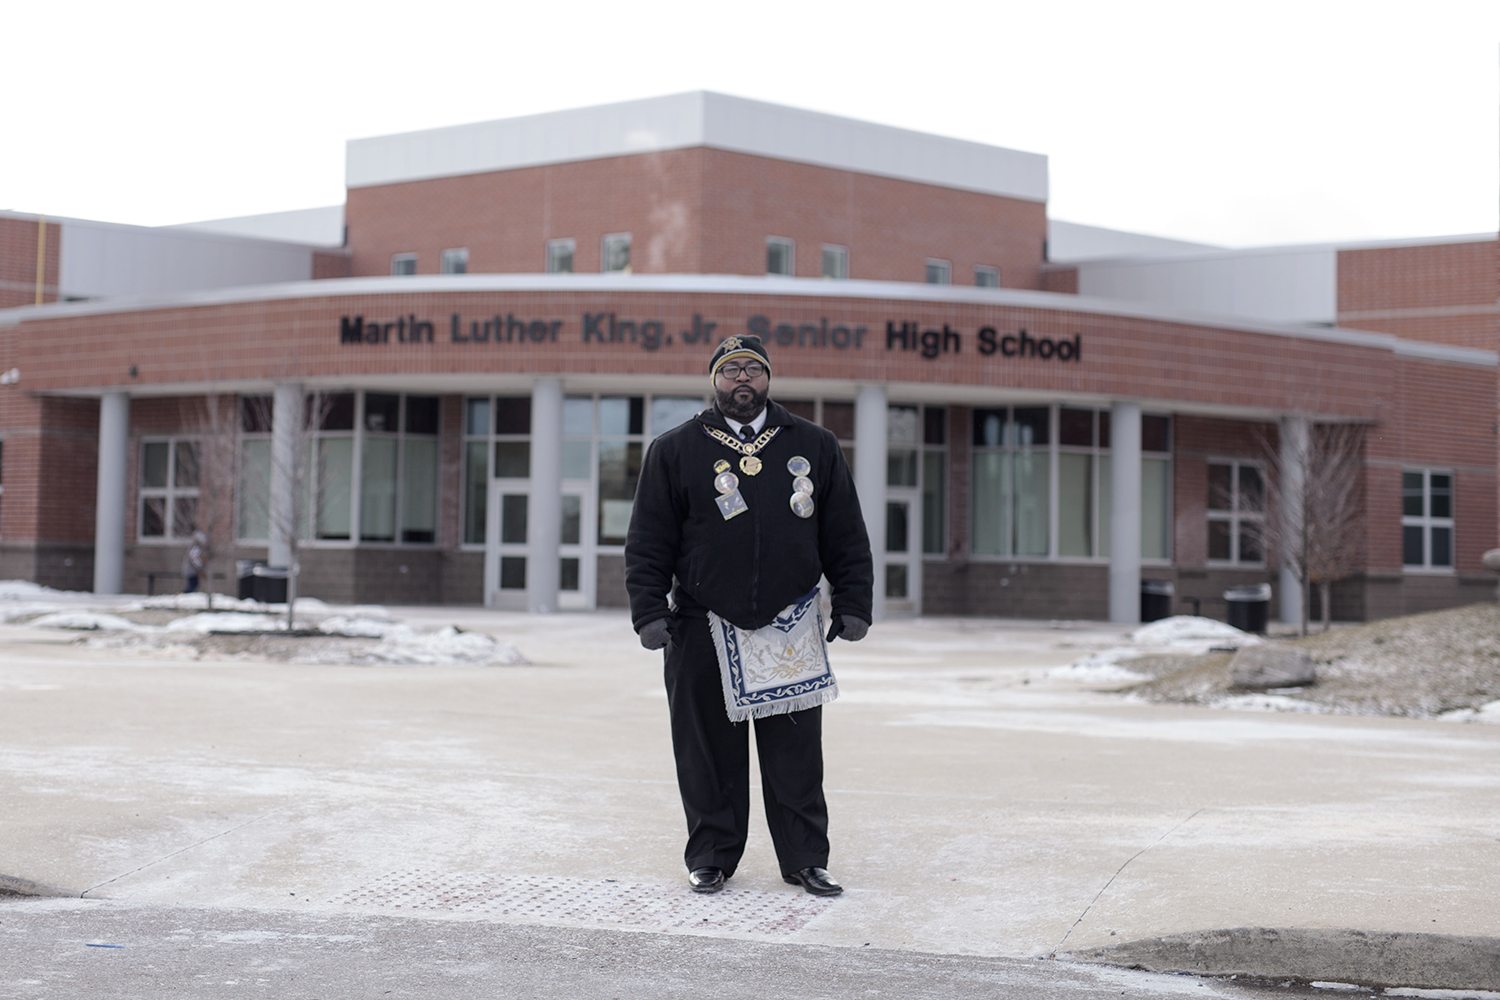 Deangelo Hayes from Detroit, a member of the Masonic Lodge, stands outside in the cold after the 7th Annual Martin Luther King Jr. Legacy March at Martin Luther King Jr. High School on Monday, Jan. 18, 2016 in Detroit. Hayes, having been at the inaugural march, says it's important to continue the tradition of involvement between the Masonig Lodge and the high school, not only with the annual march but with mentorship as well. Tim Galloway/Special for DetNews